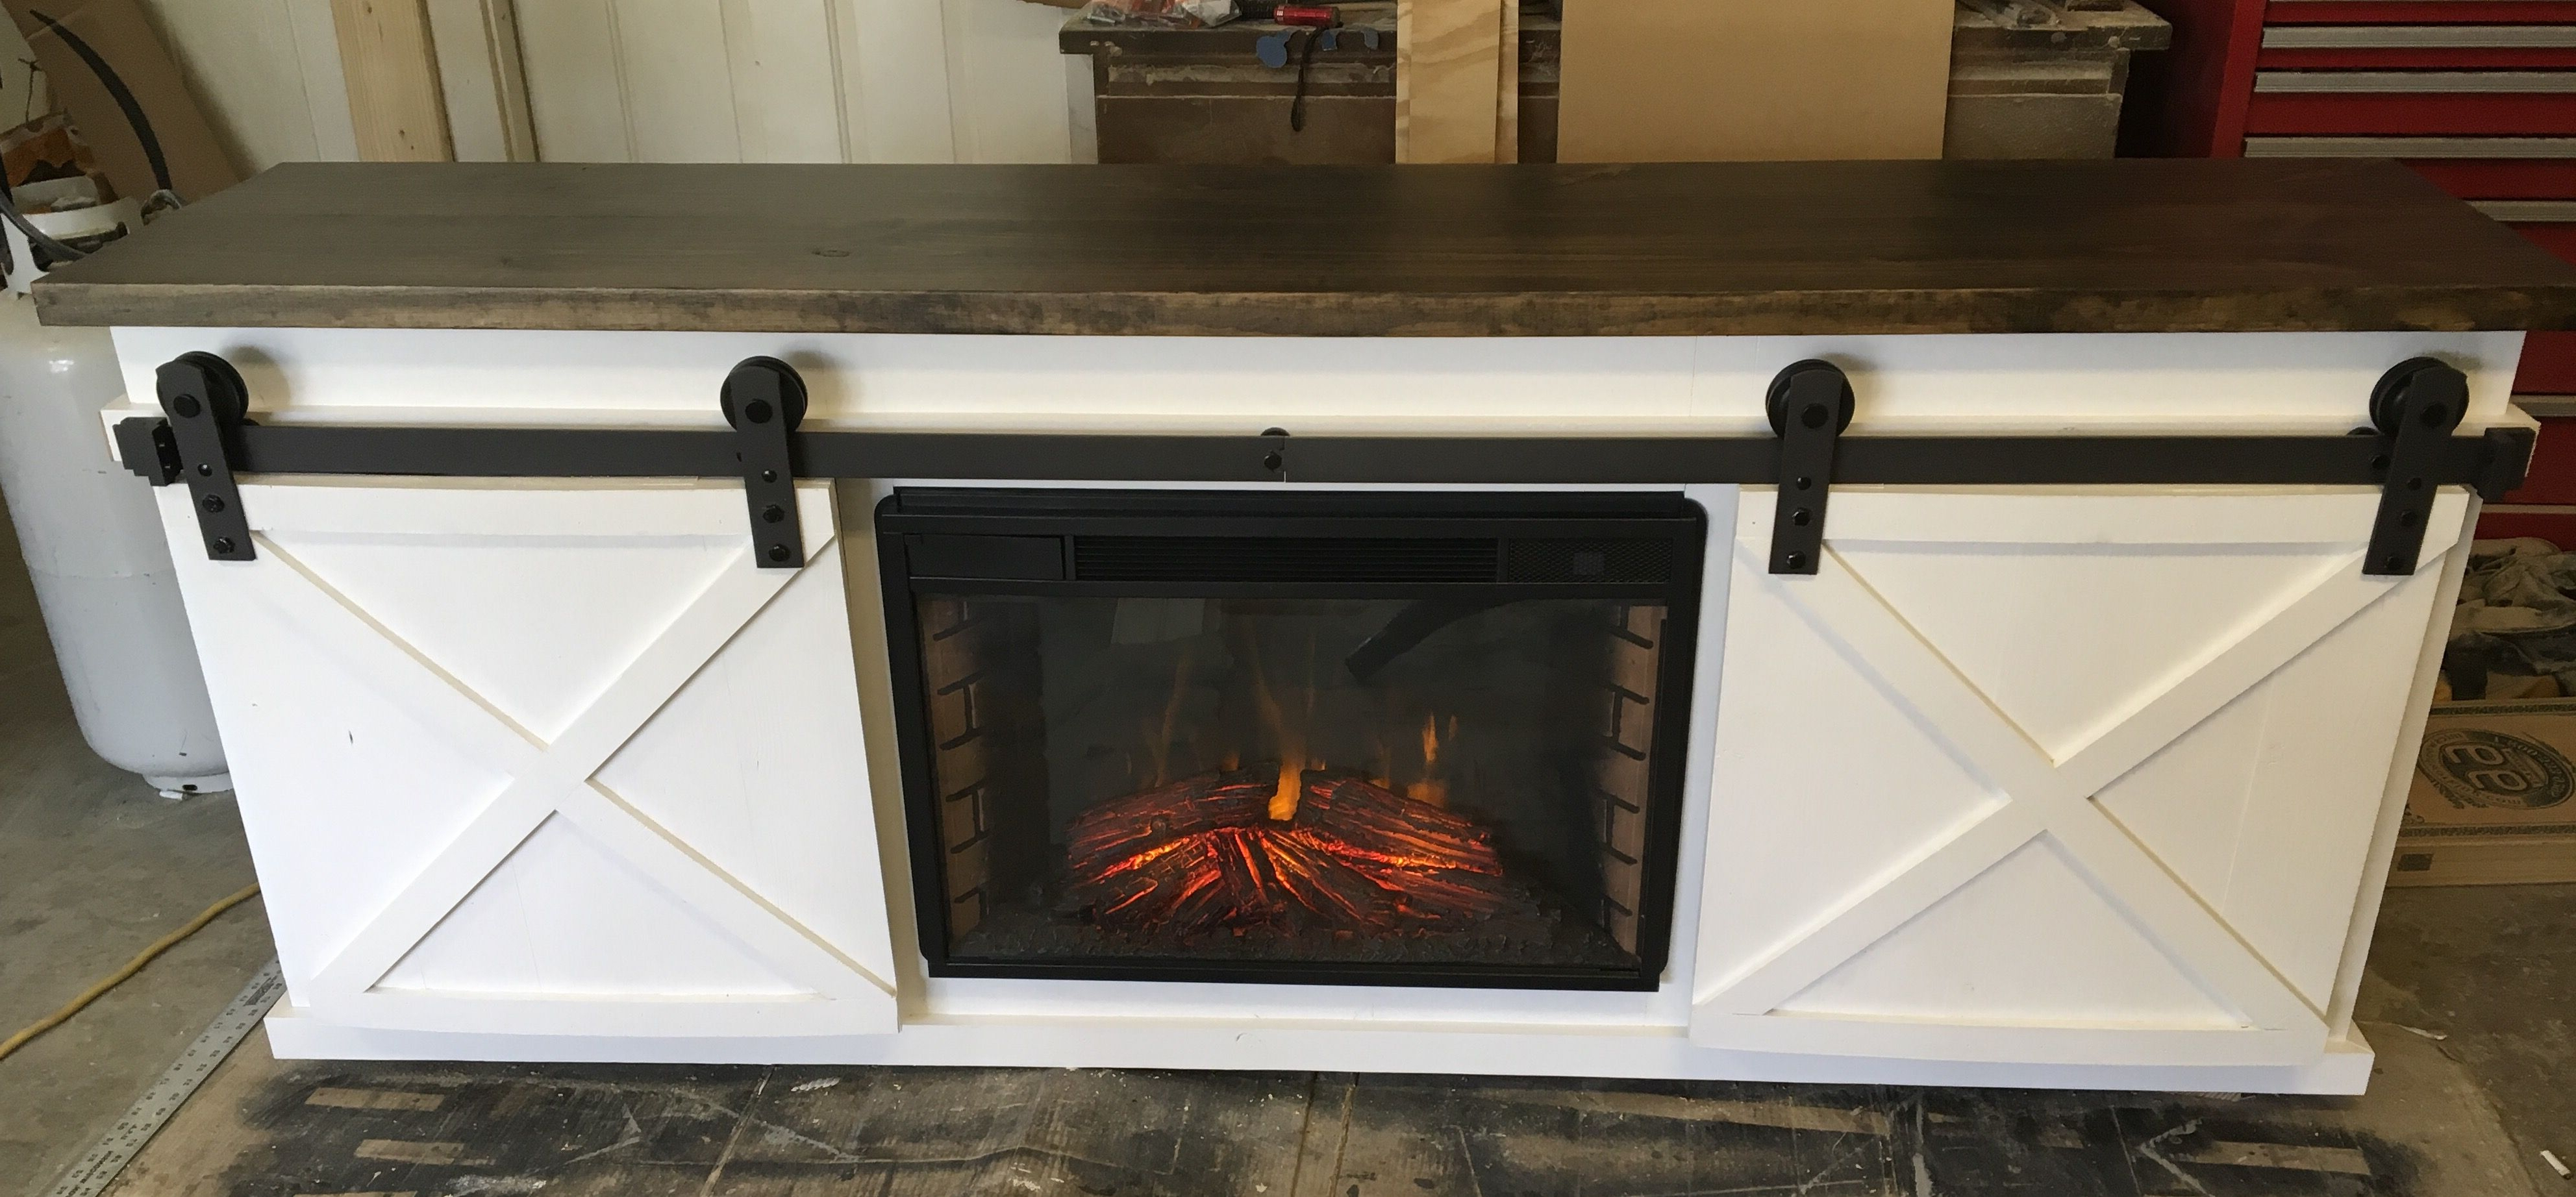 Well Known Tv Console With Fireplace Insert – Diy Projects (View 20 of 20)